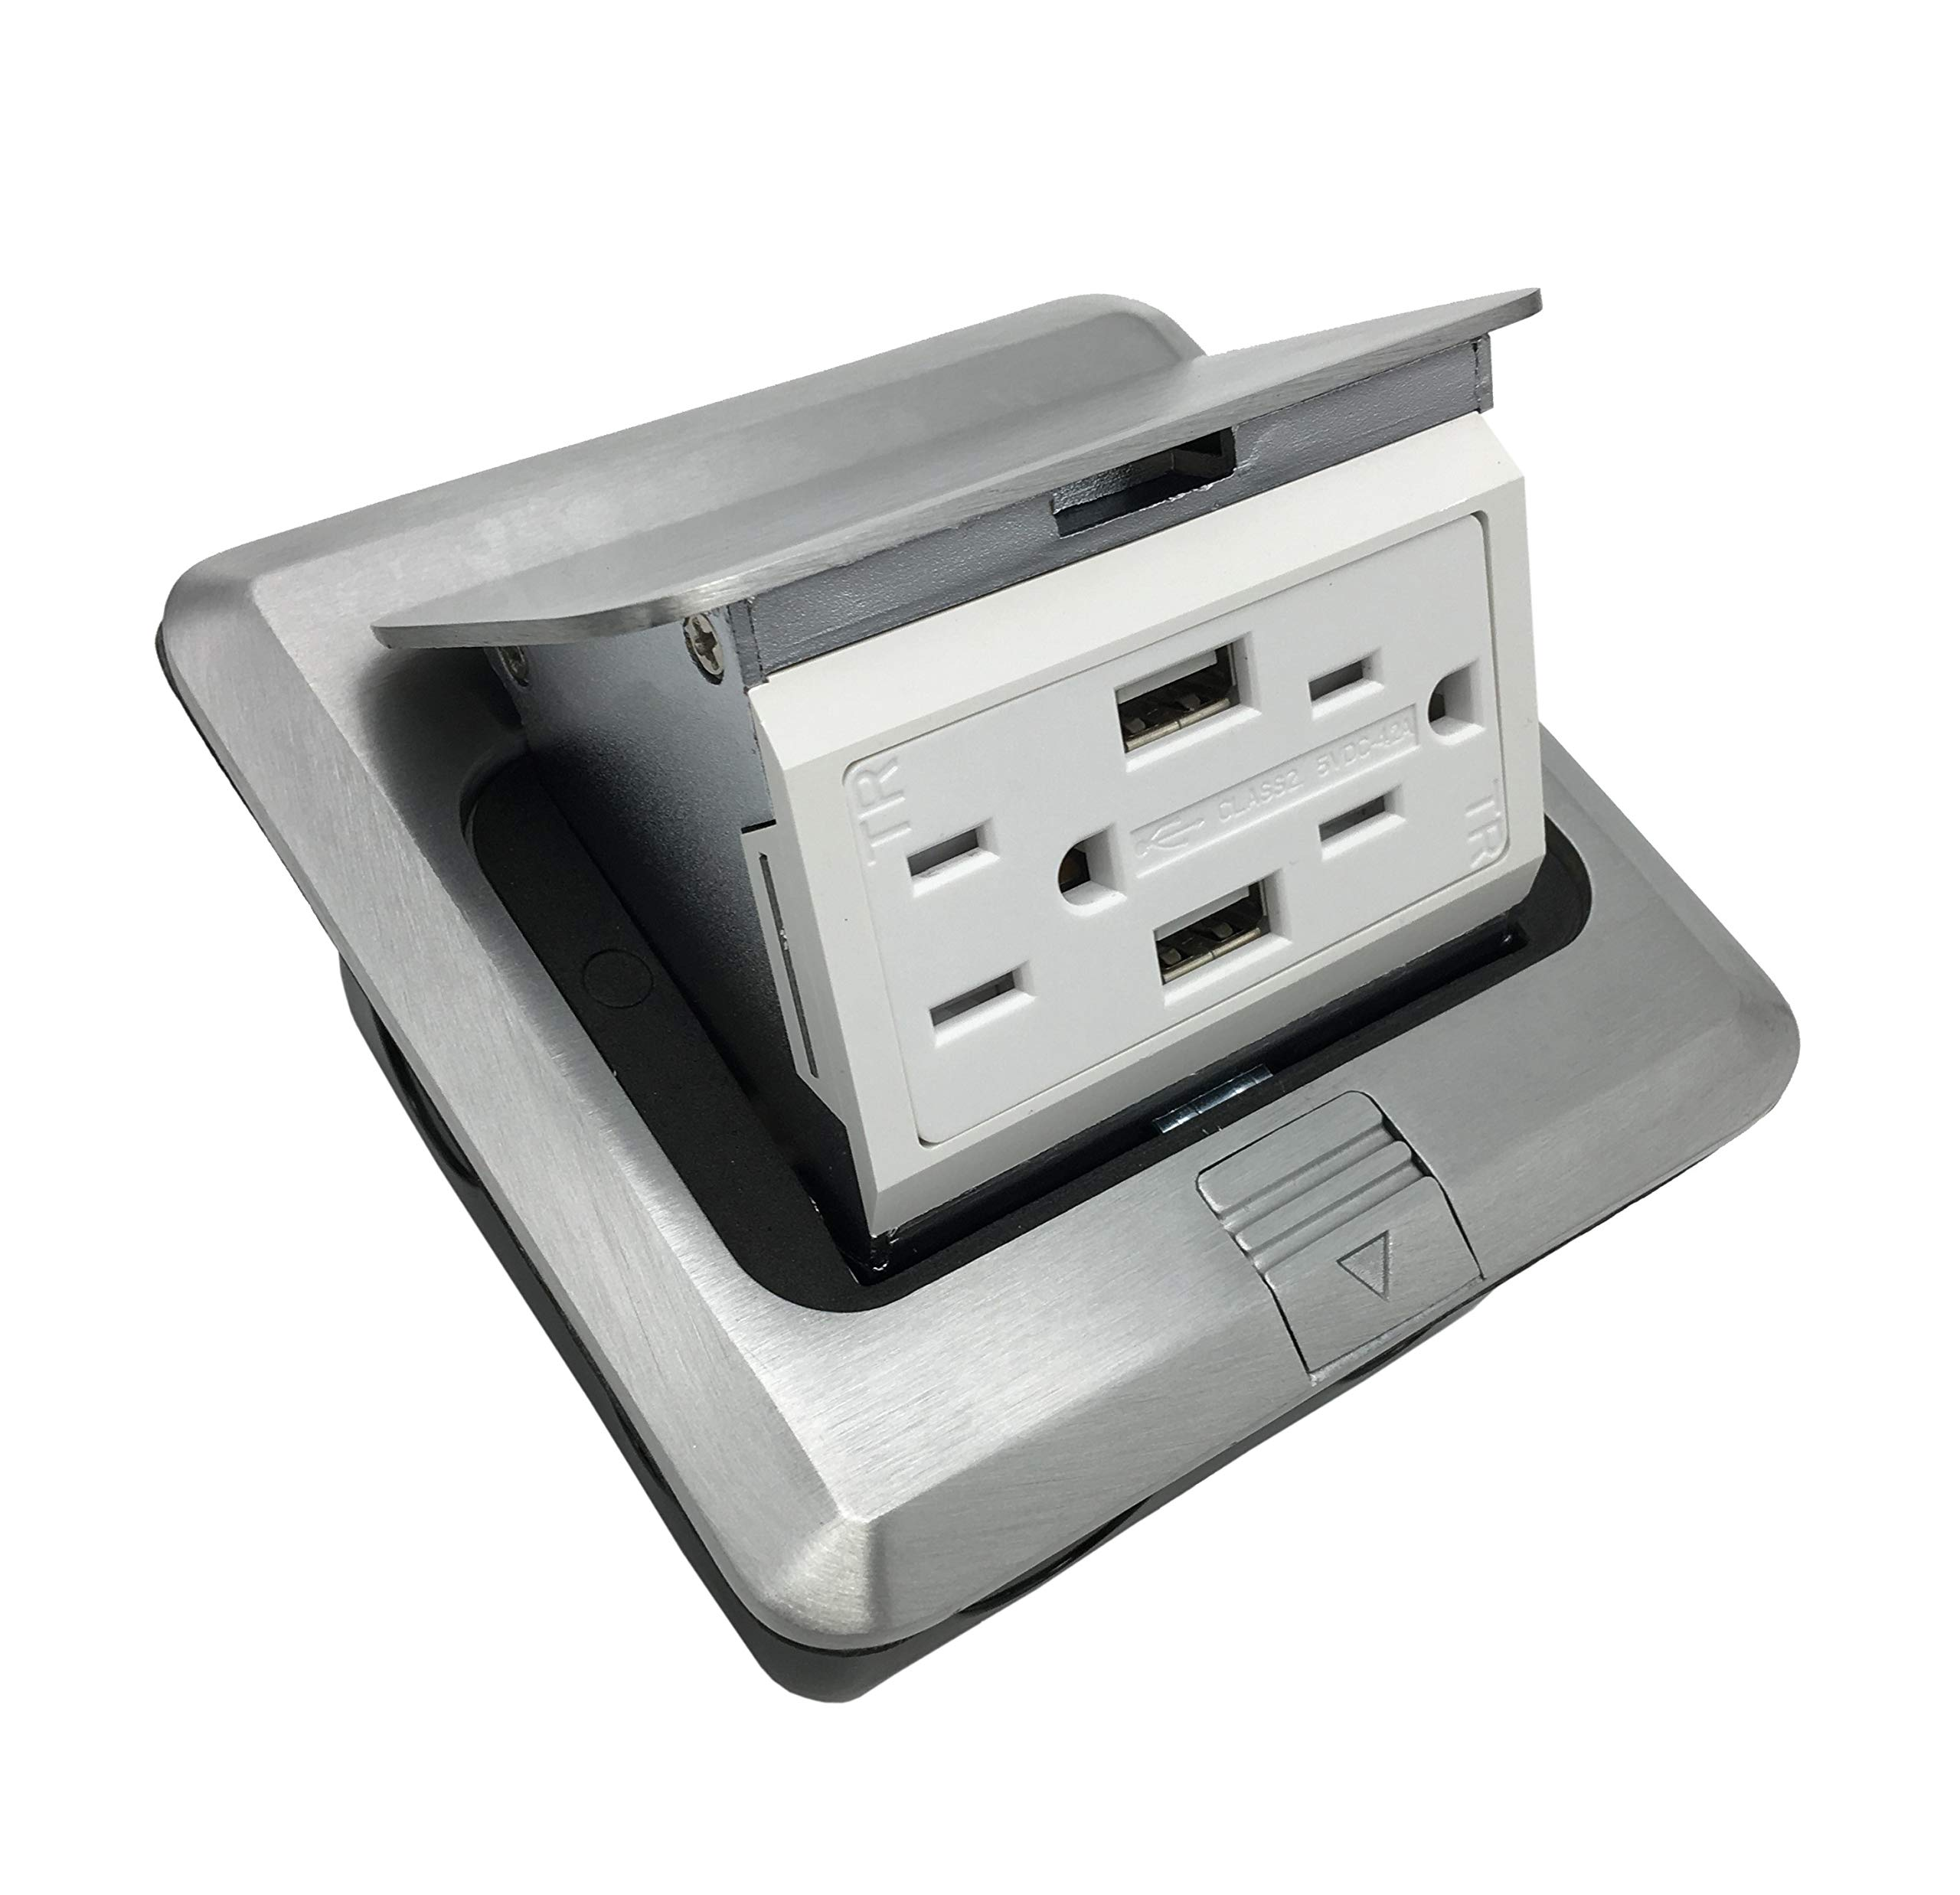 Pop Up Receptacle Floor Outlet W/15A with 2 USB Charging Ports Brushed Stainless Finish